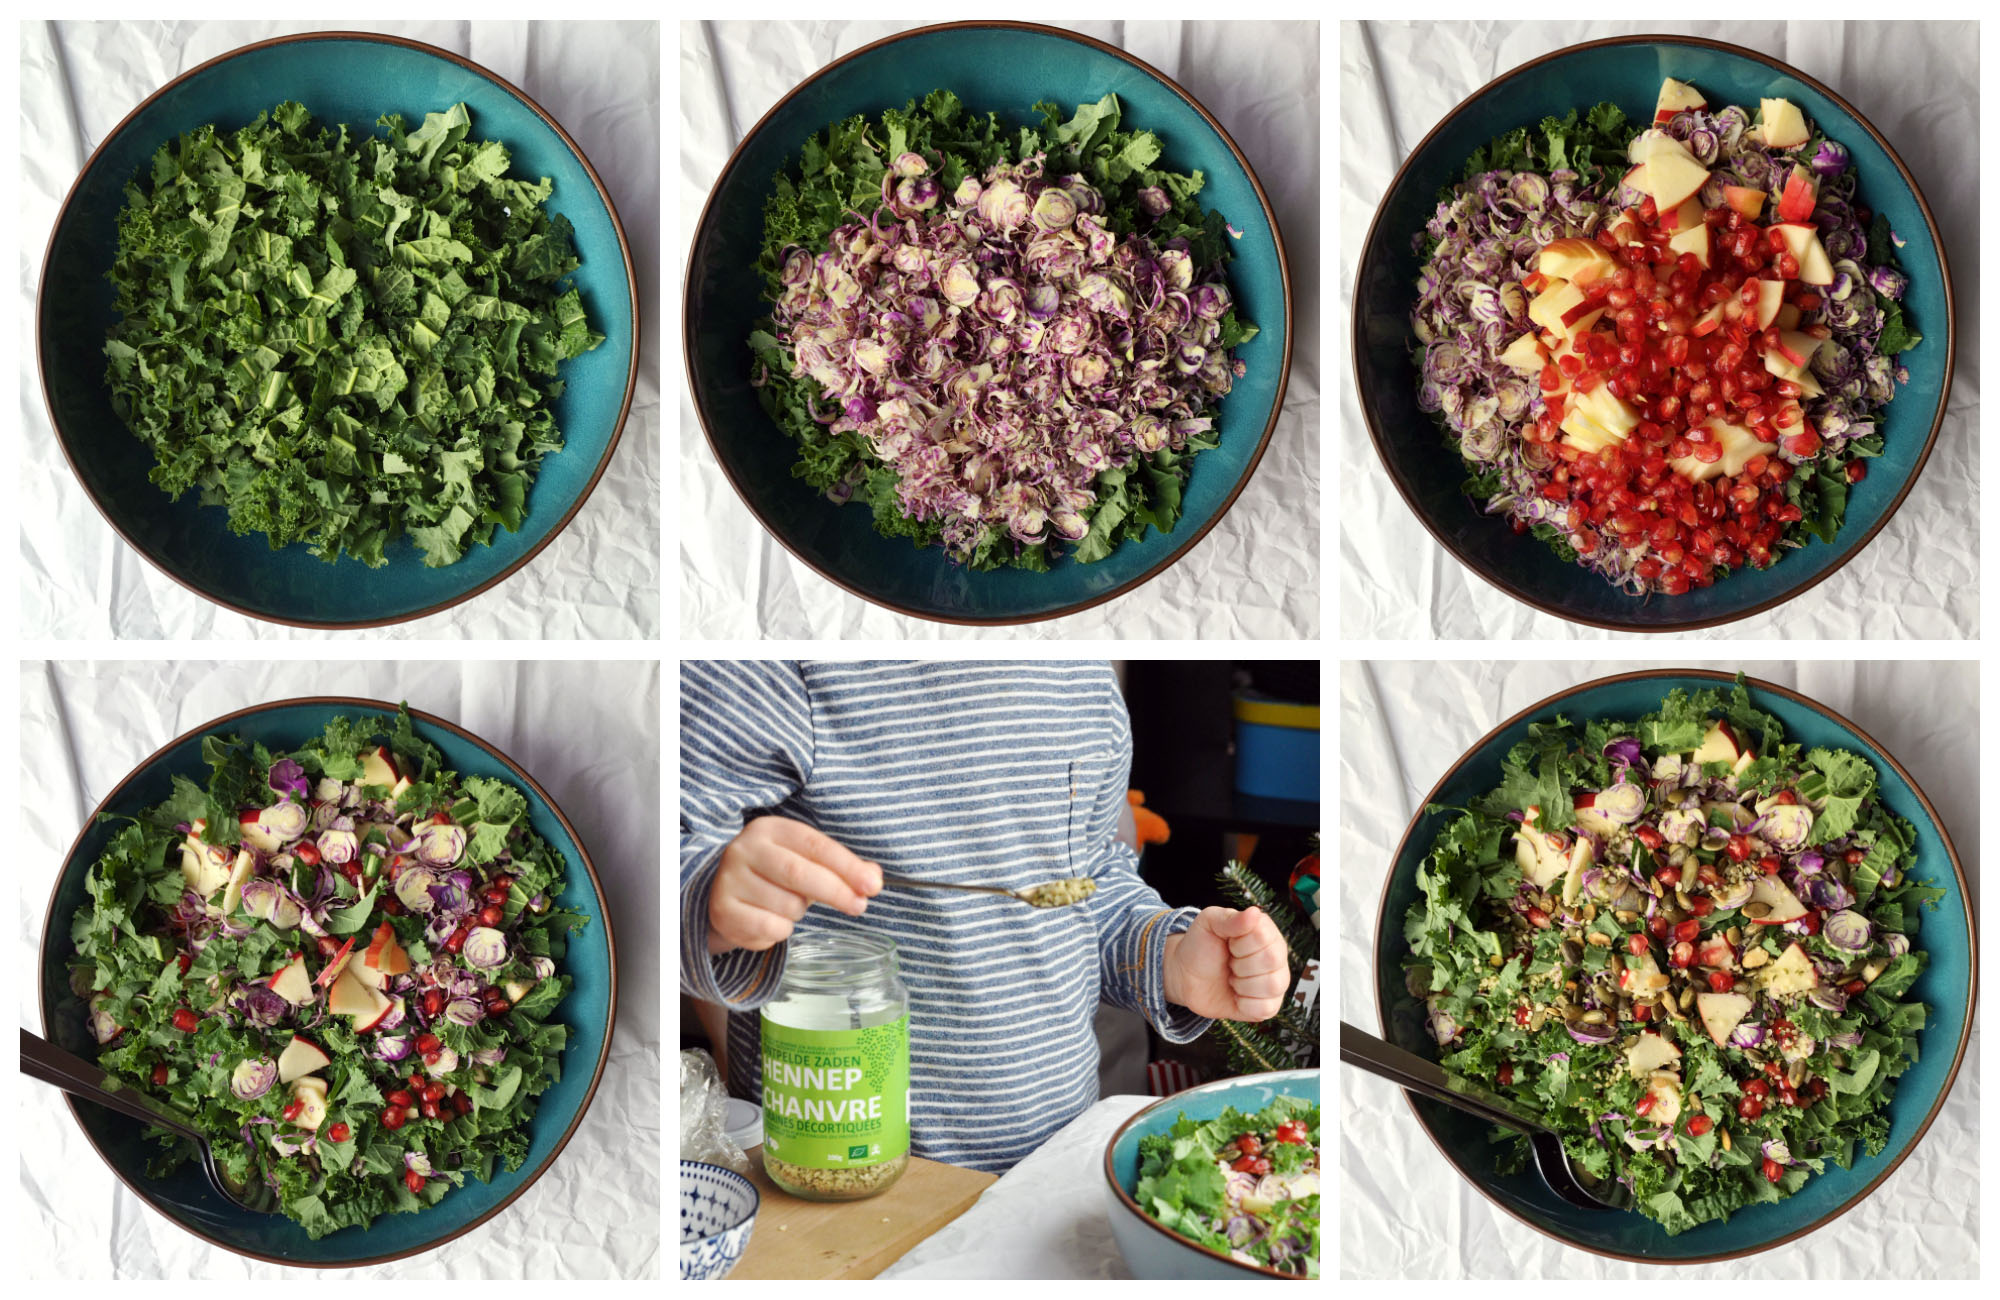 Low Histamine Brussels Sprout Salad - step by step